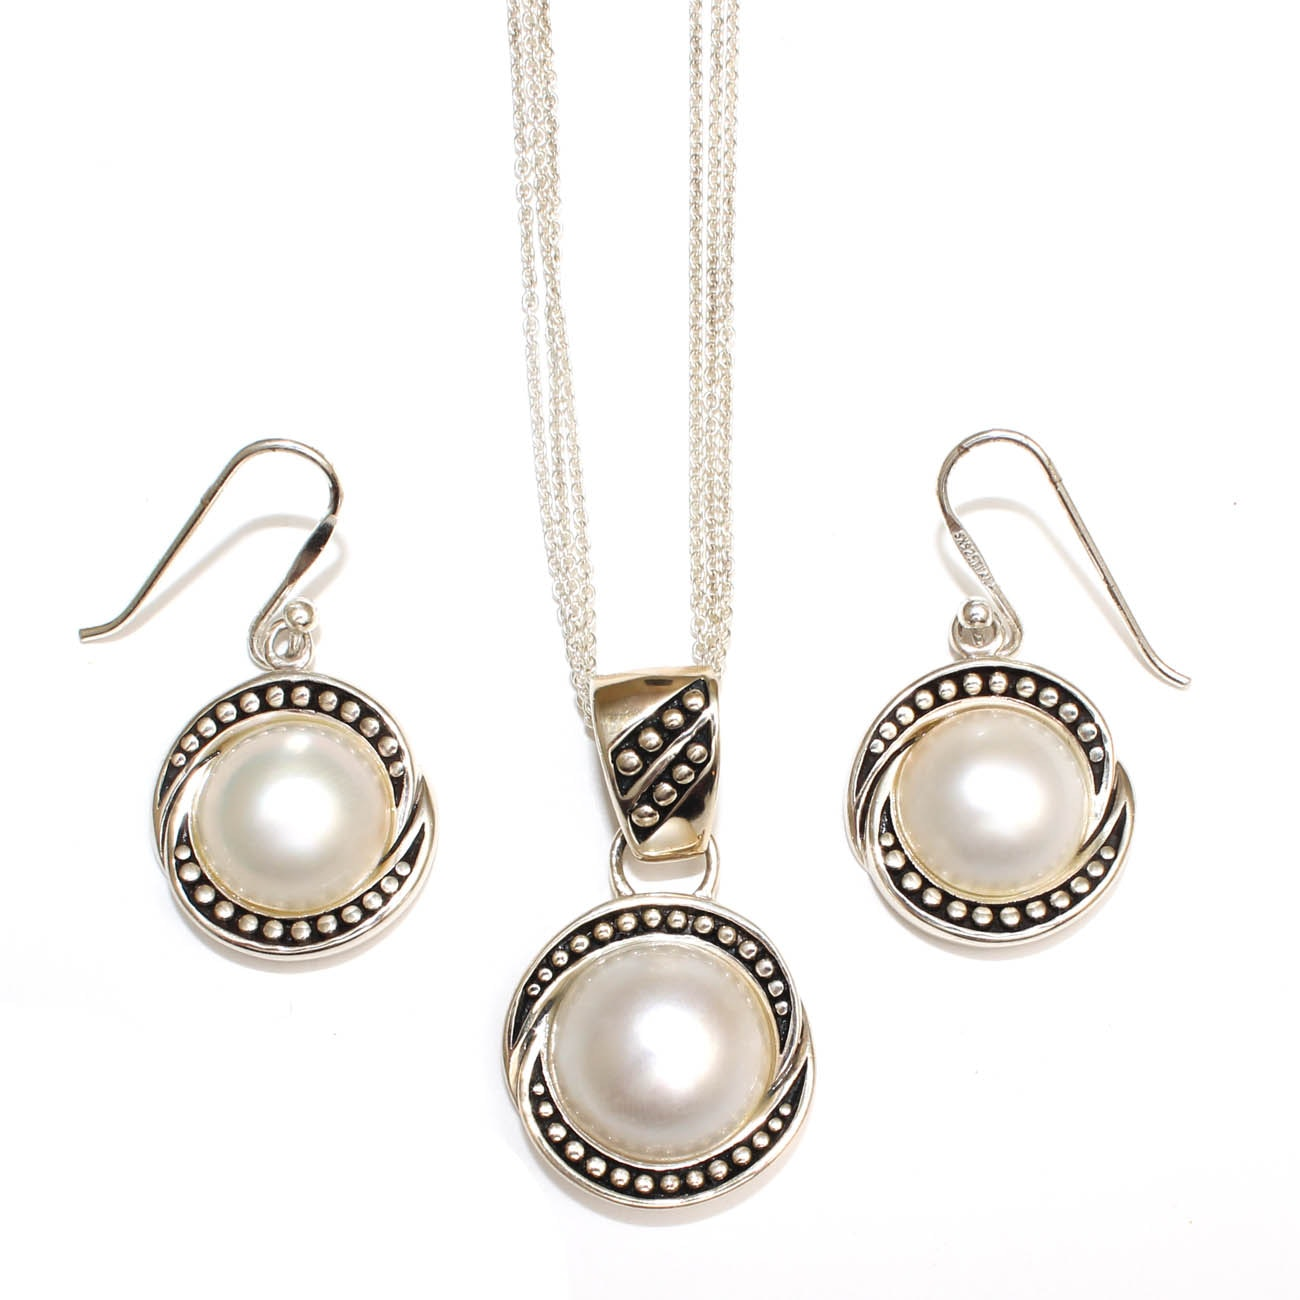 Sterling Silver and Cultured Pearl Demi Parure